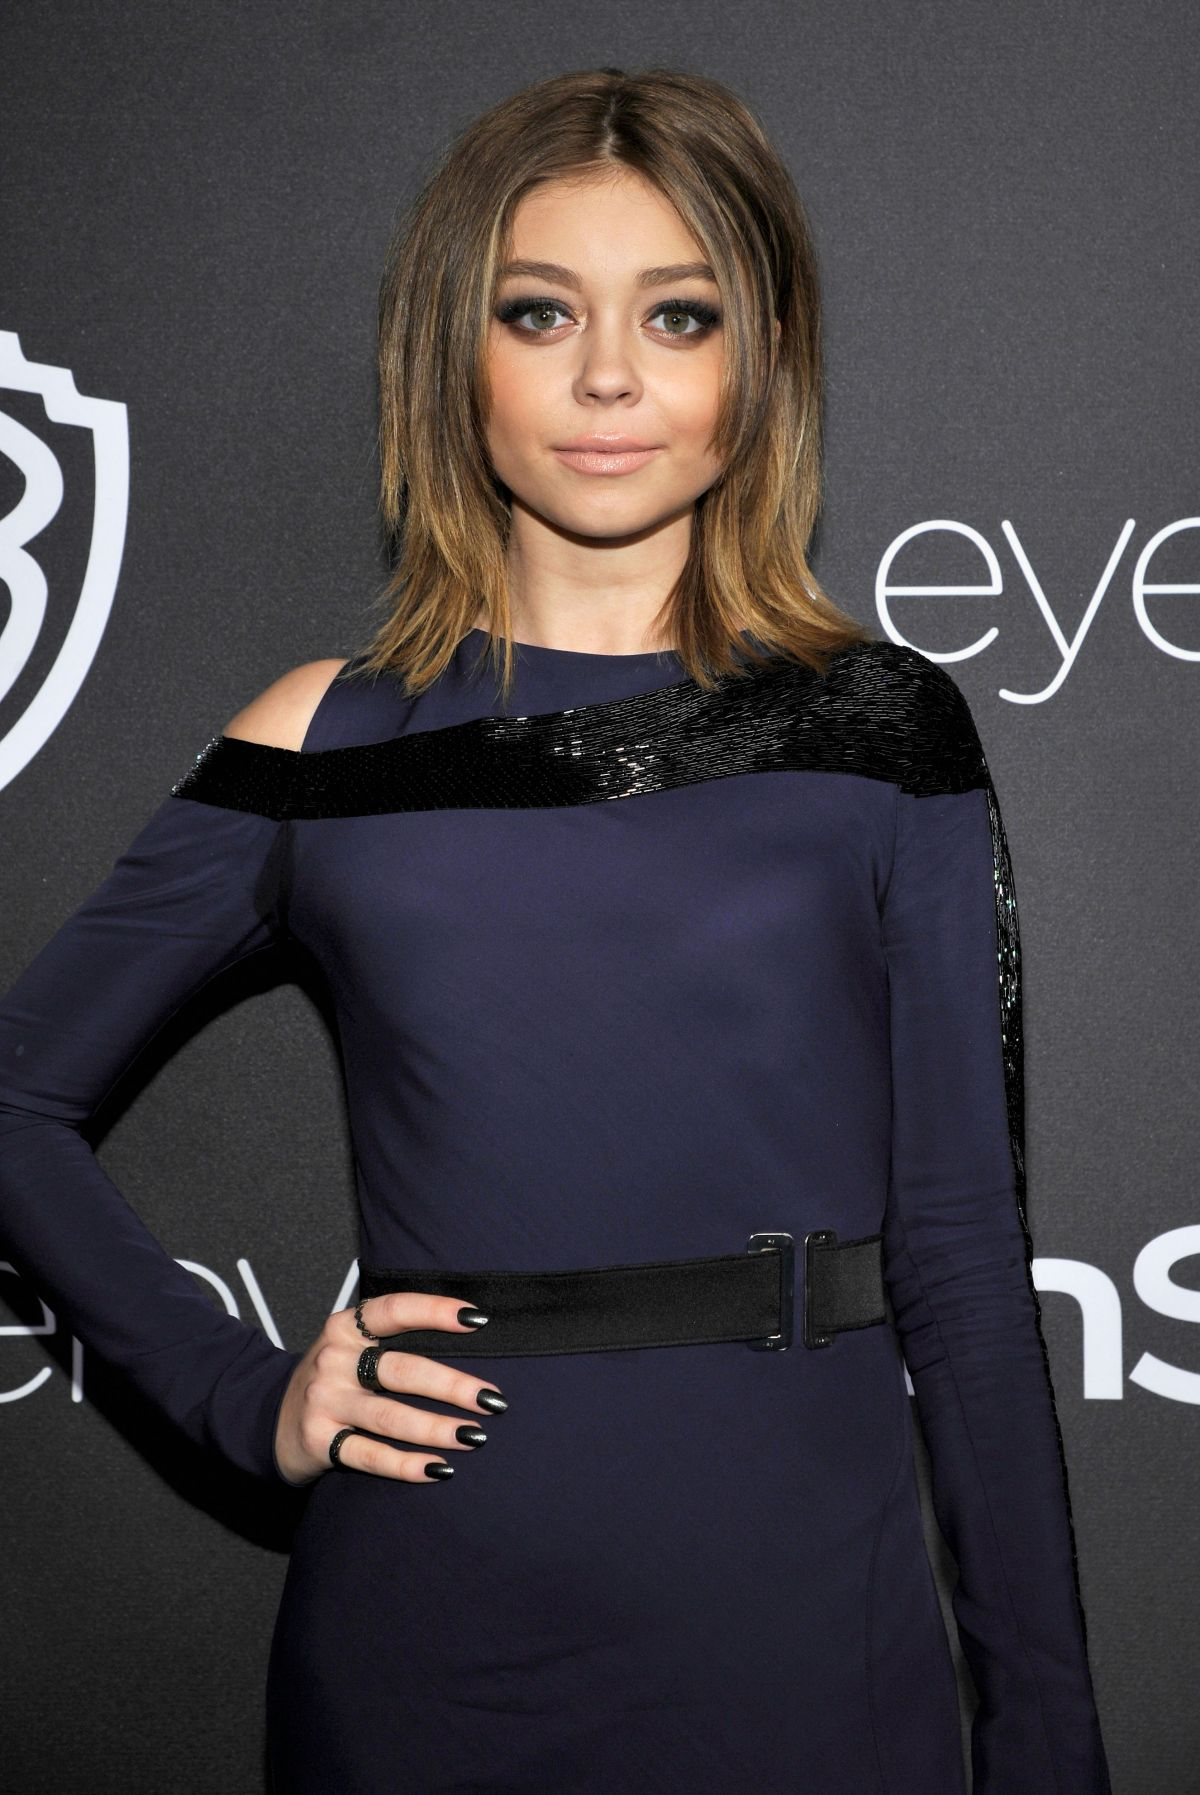 SARAH HYLAND at Warner Bros. Pictures & Instyle's 18th Annual Golden Globes Party in Beverly Hills 01/08/2017